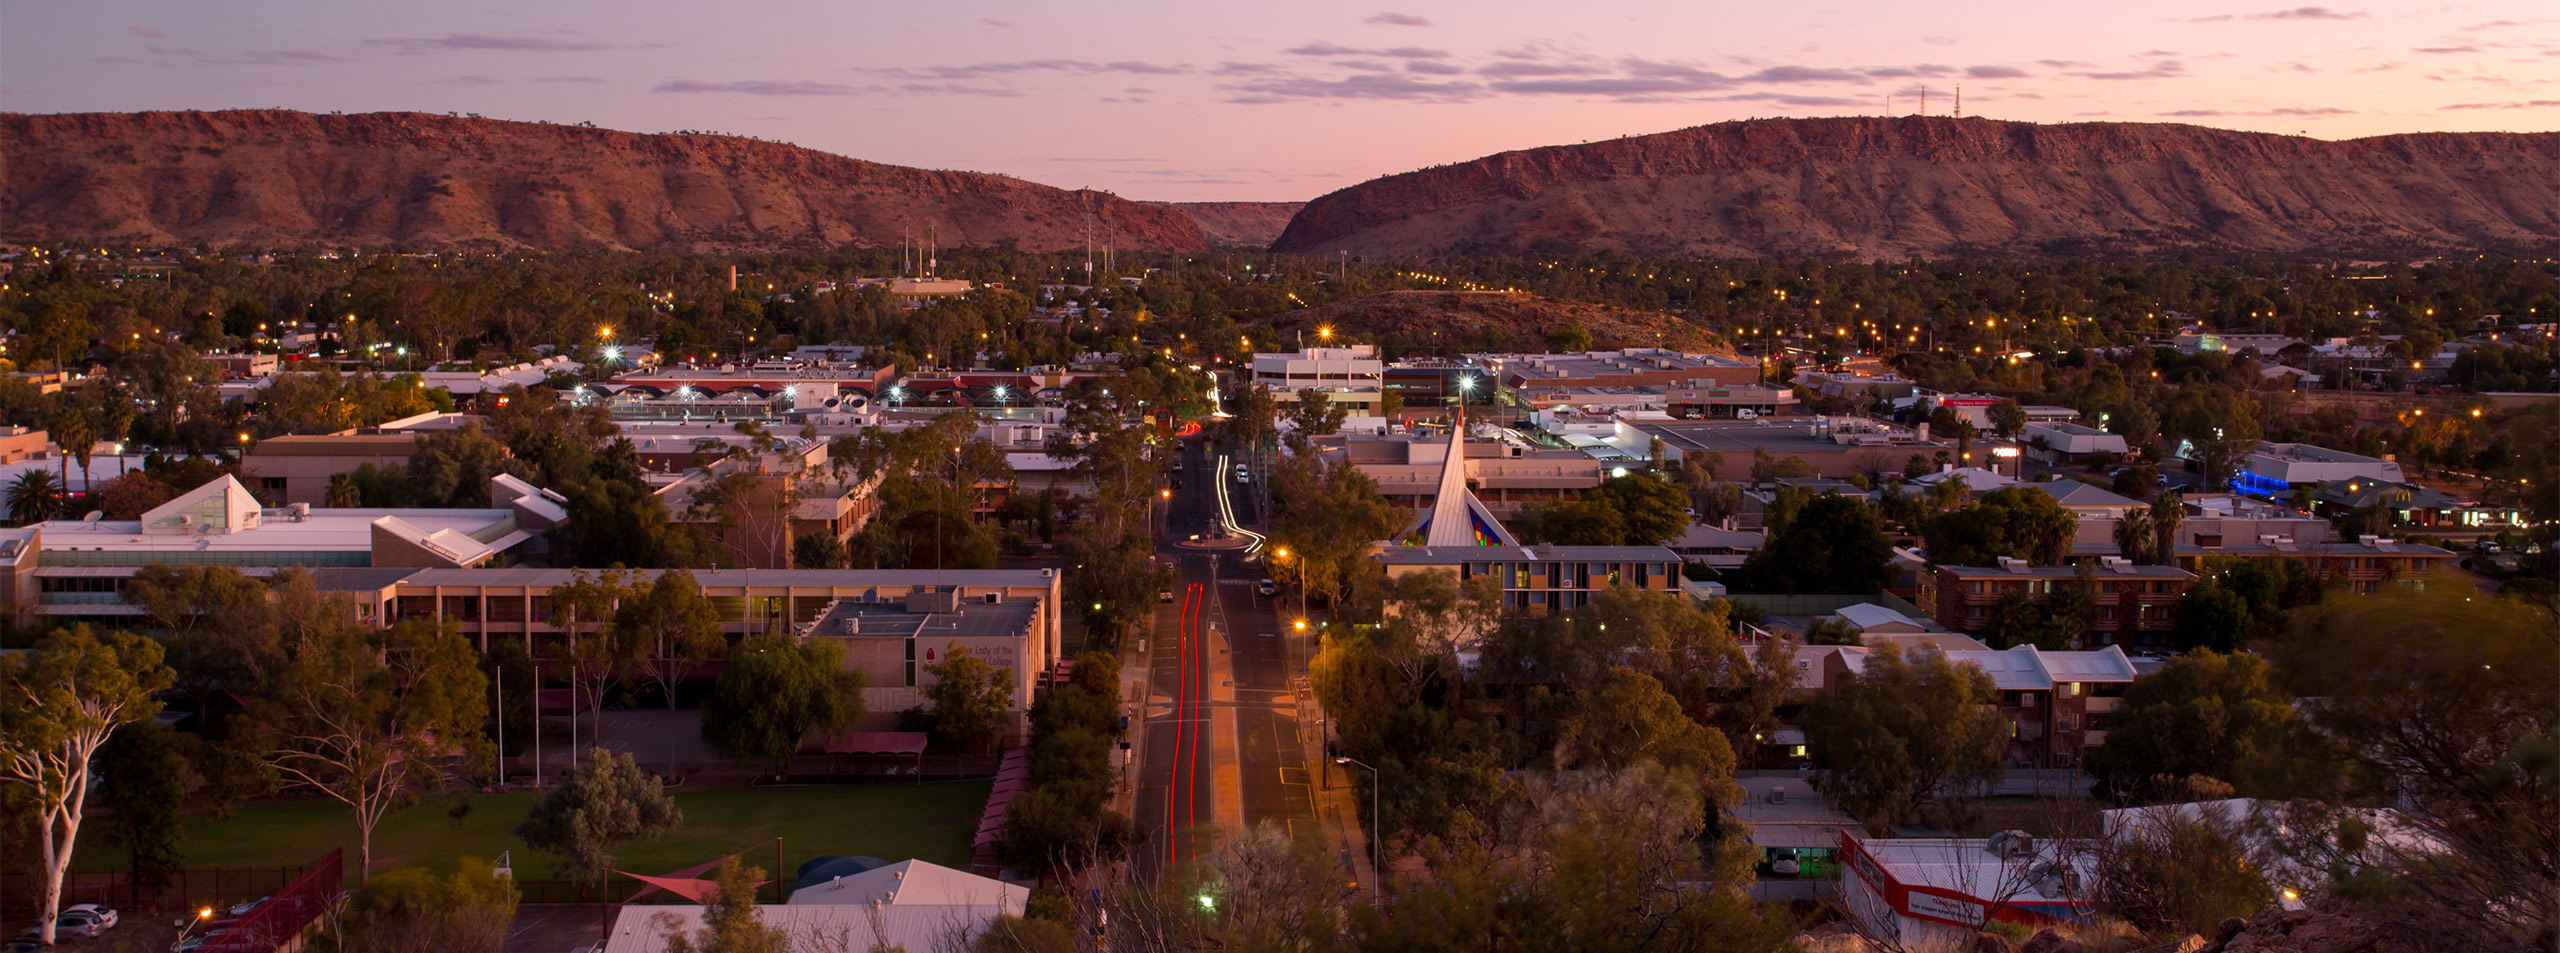 Alice Springs Town at Sunset